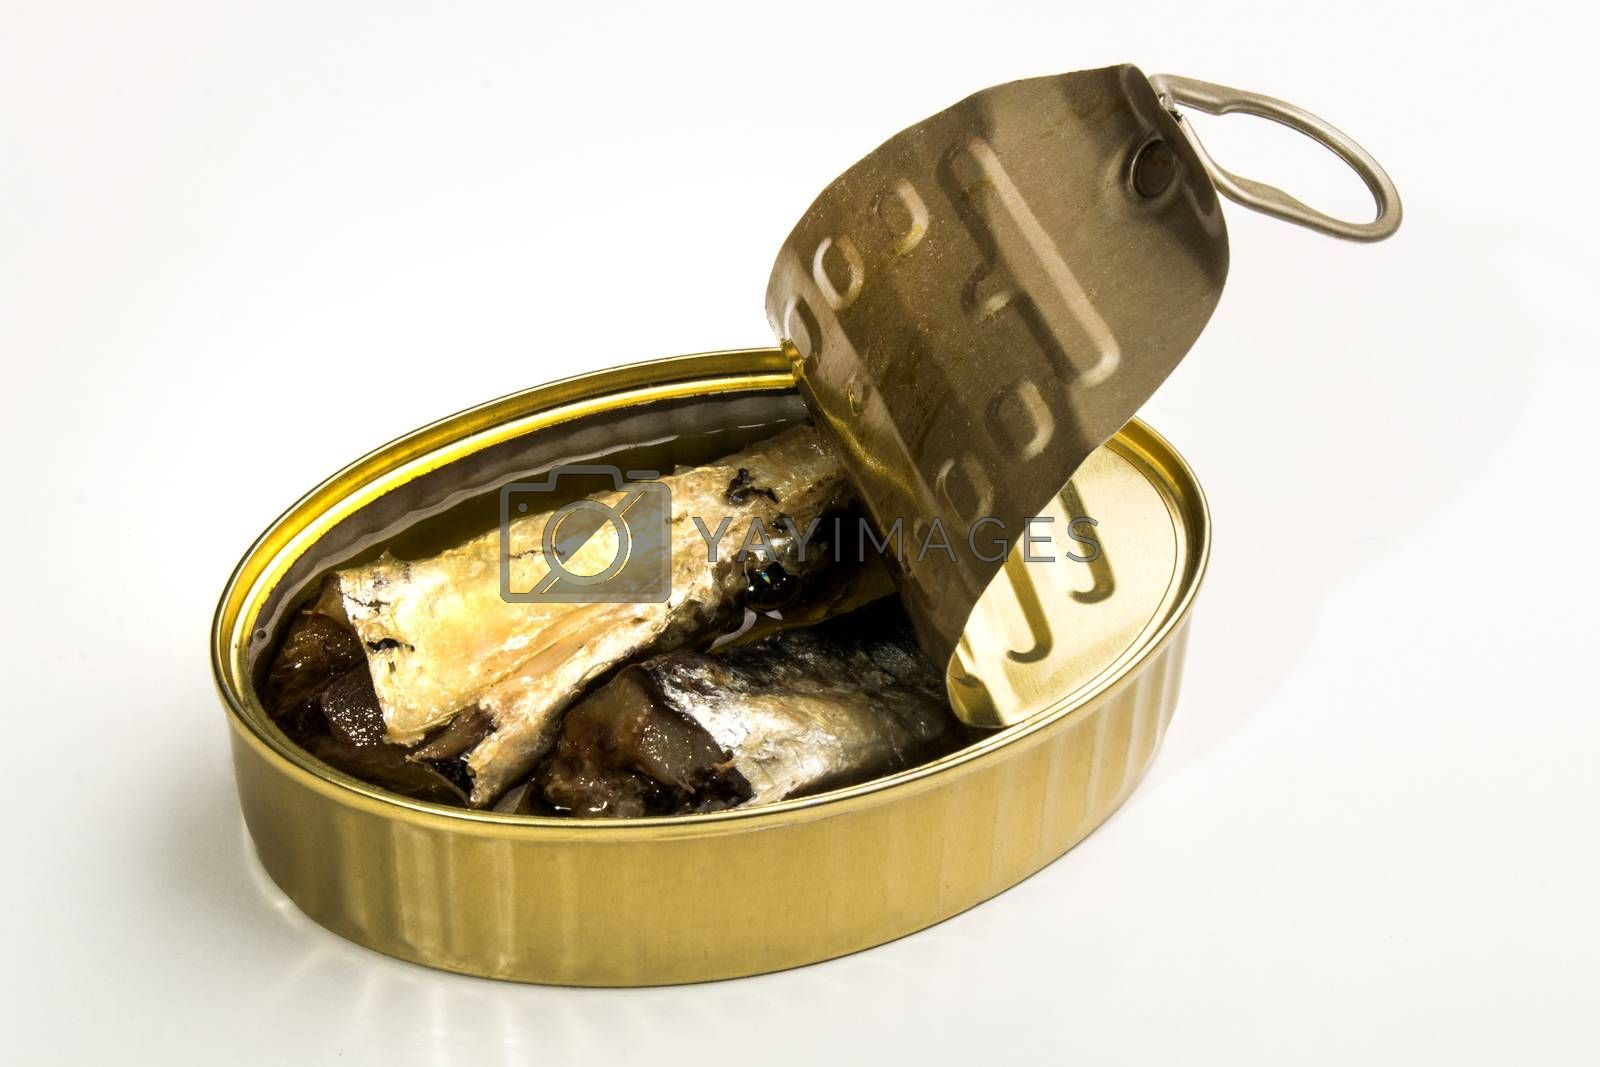 canned sardines in oil, isolated on white background